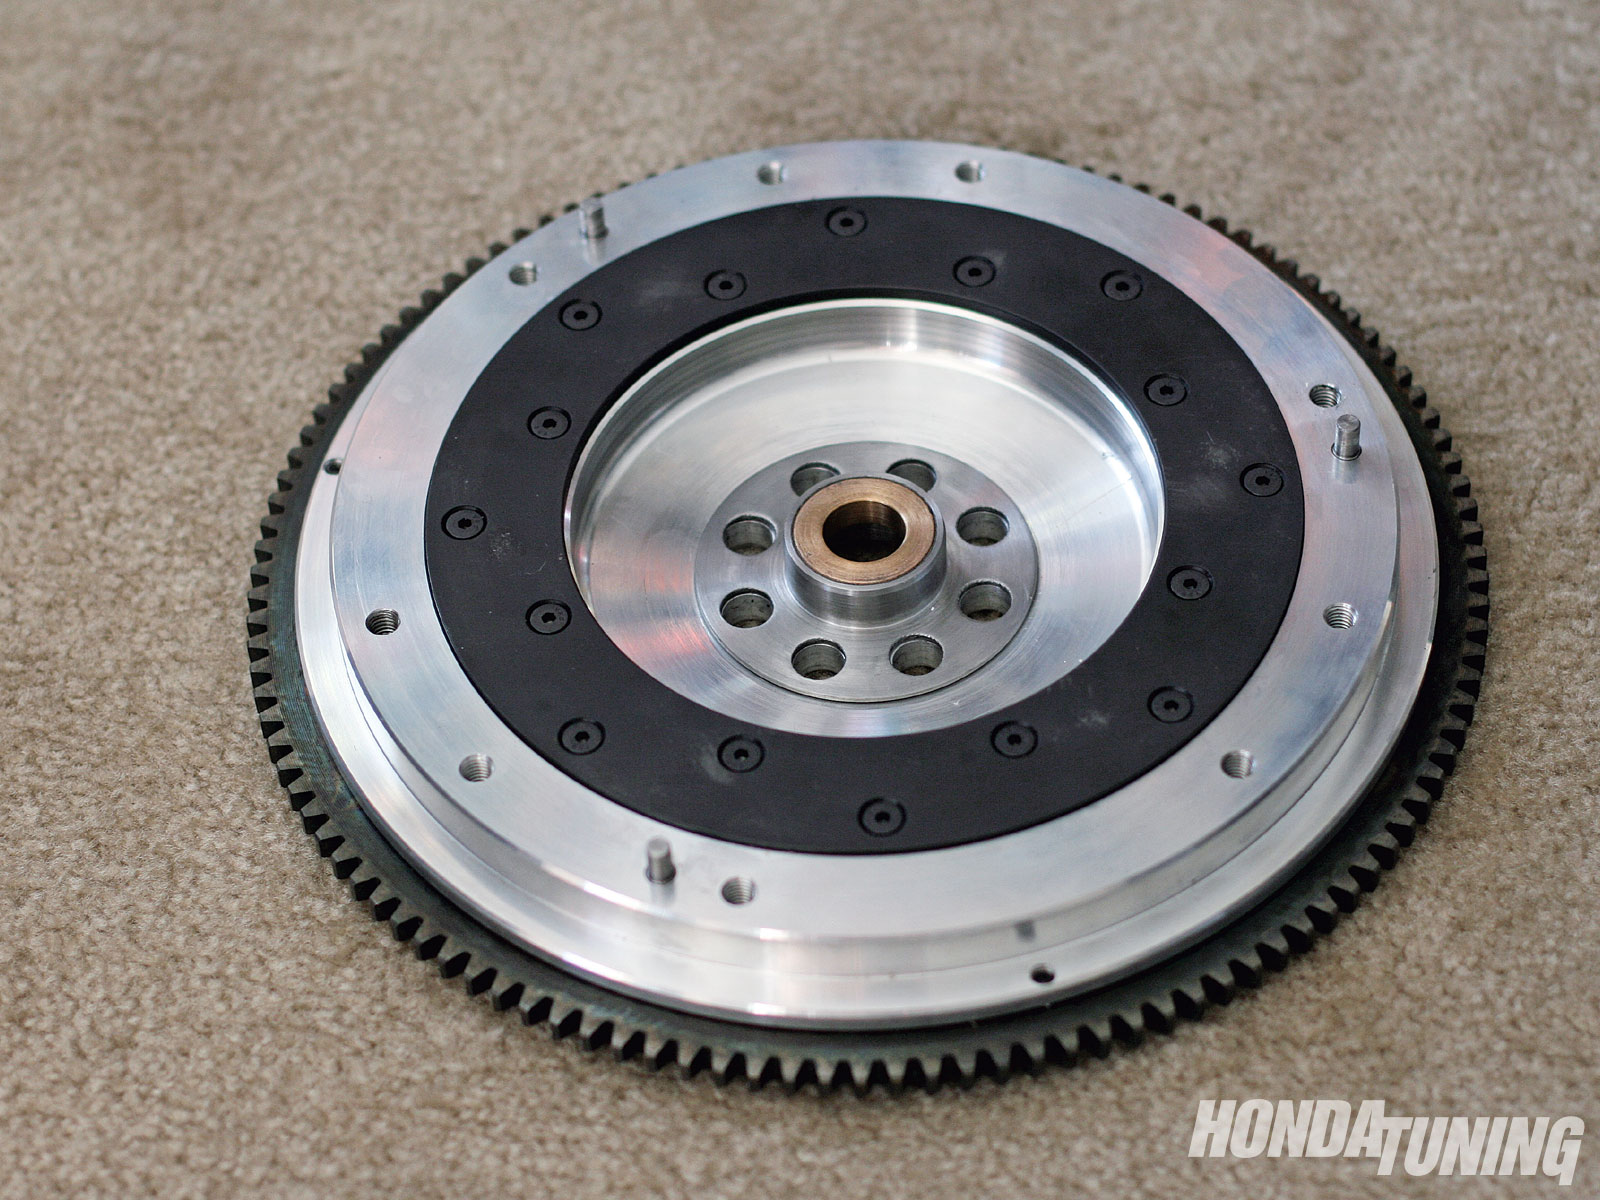 hight resolution of  motor mount htup 1010 06 o k24 swap into s2000 chassis clutch masters flywheel